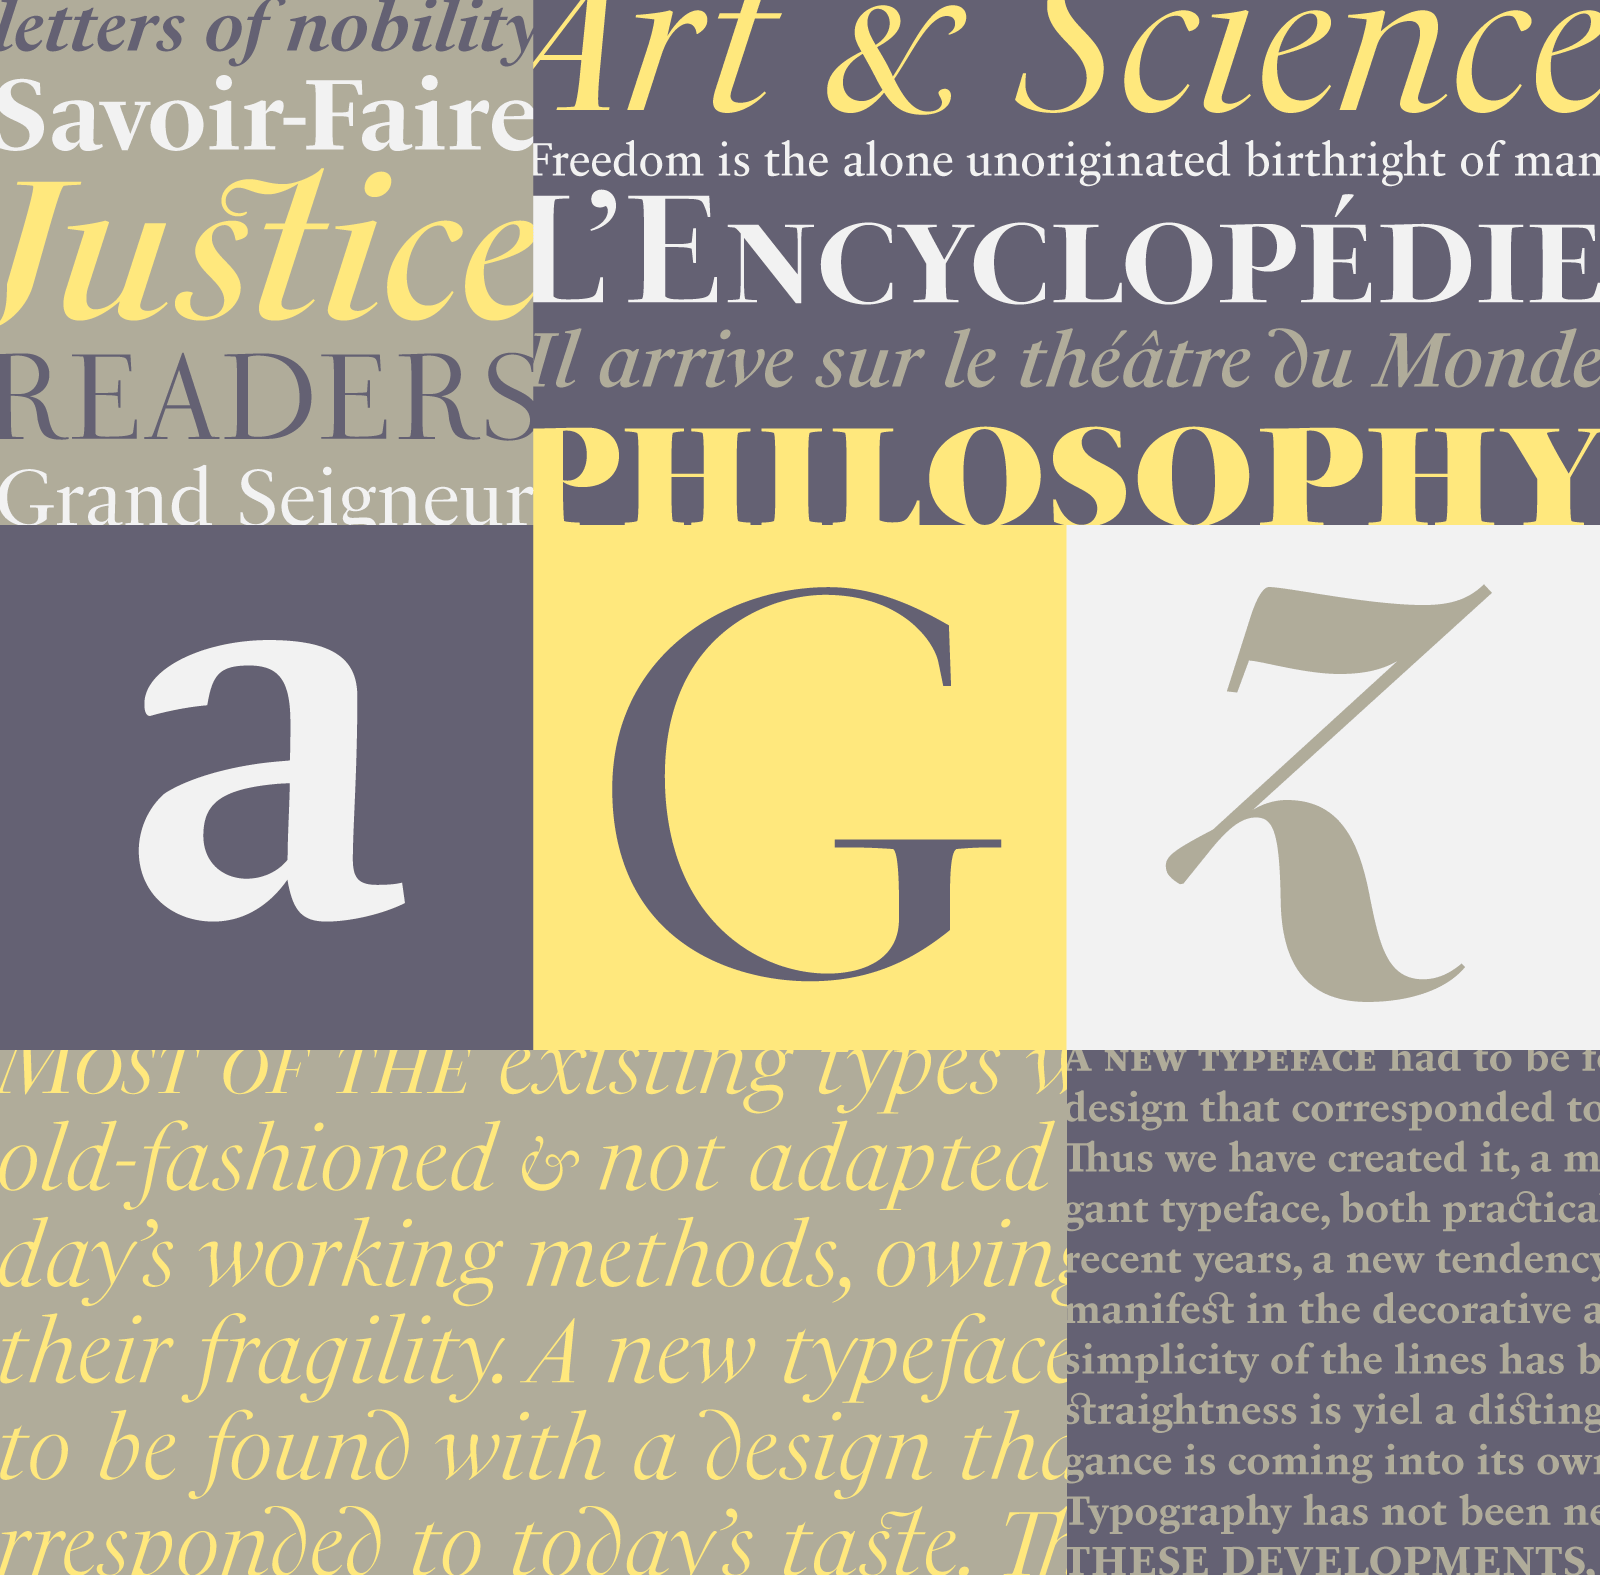 PS Fournier: A tribute to the French modern typography era by Stéphane Elbaz